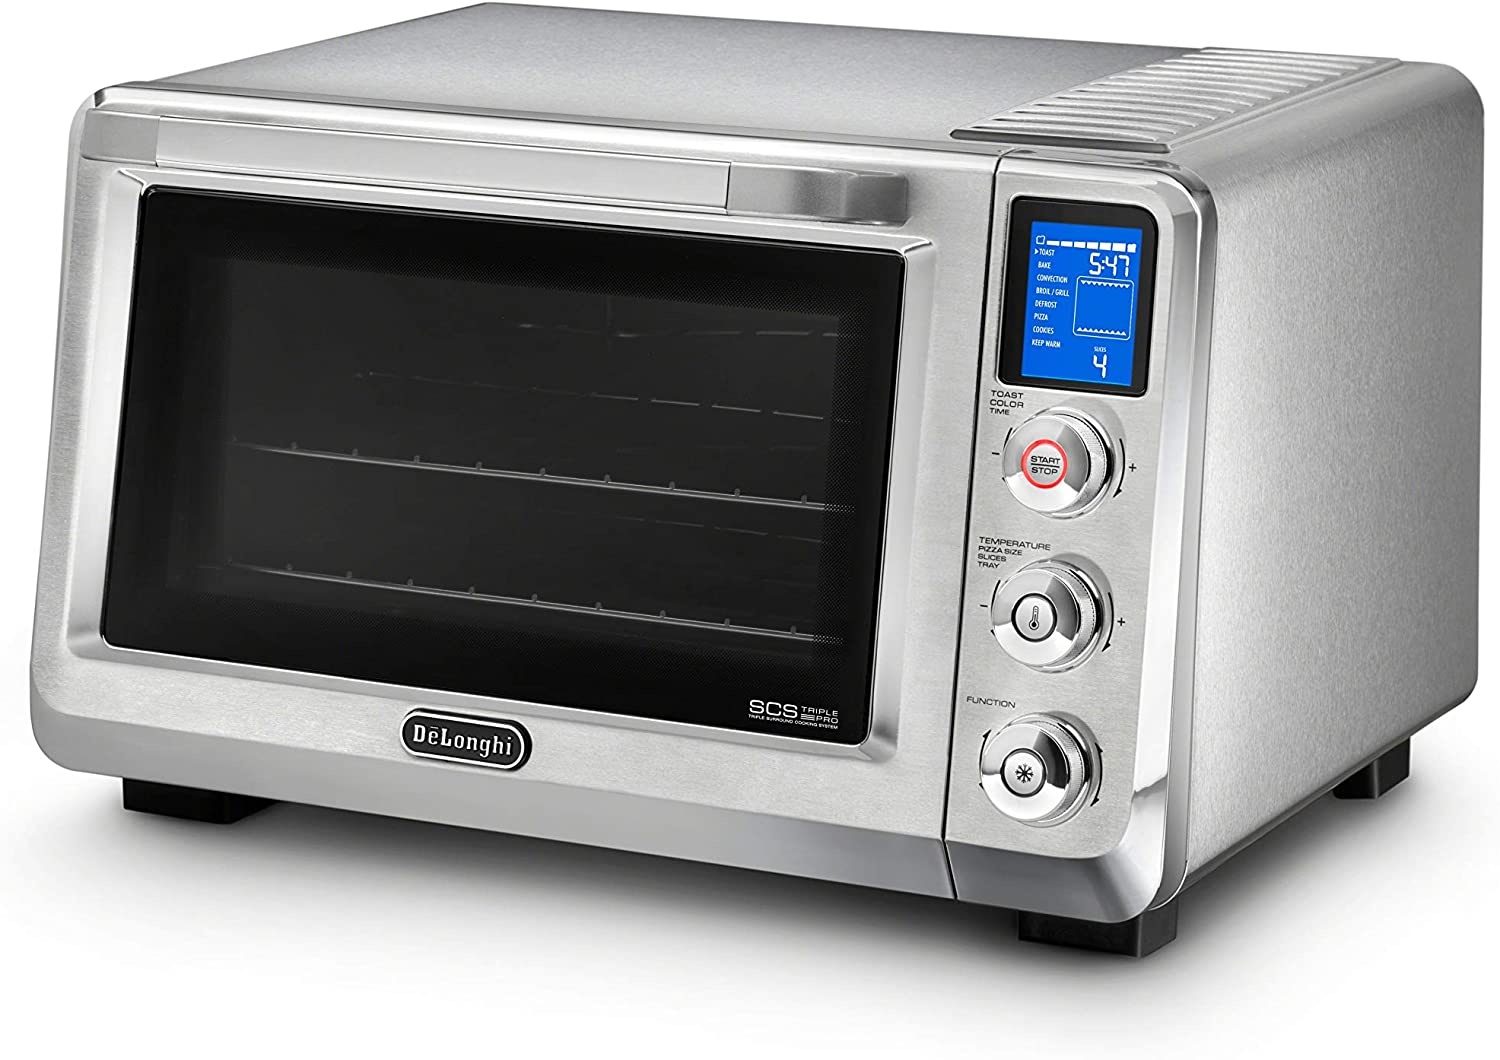 DeLonghi America, Inc EO241250M Livenza Digital Countertop Oven, Stainless Steel